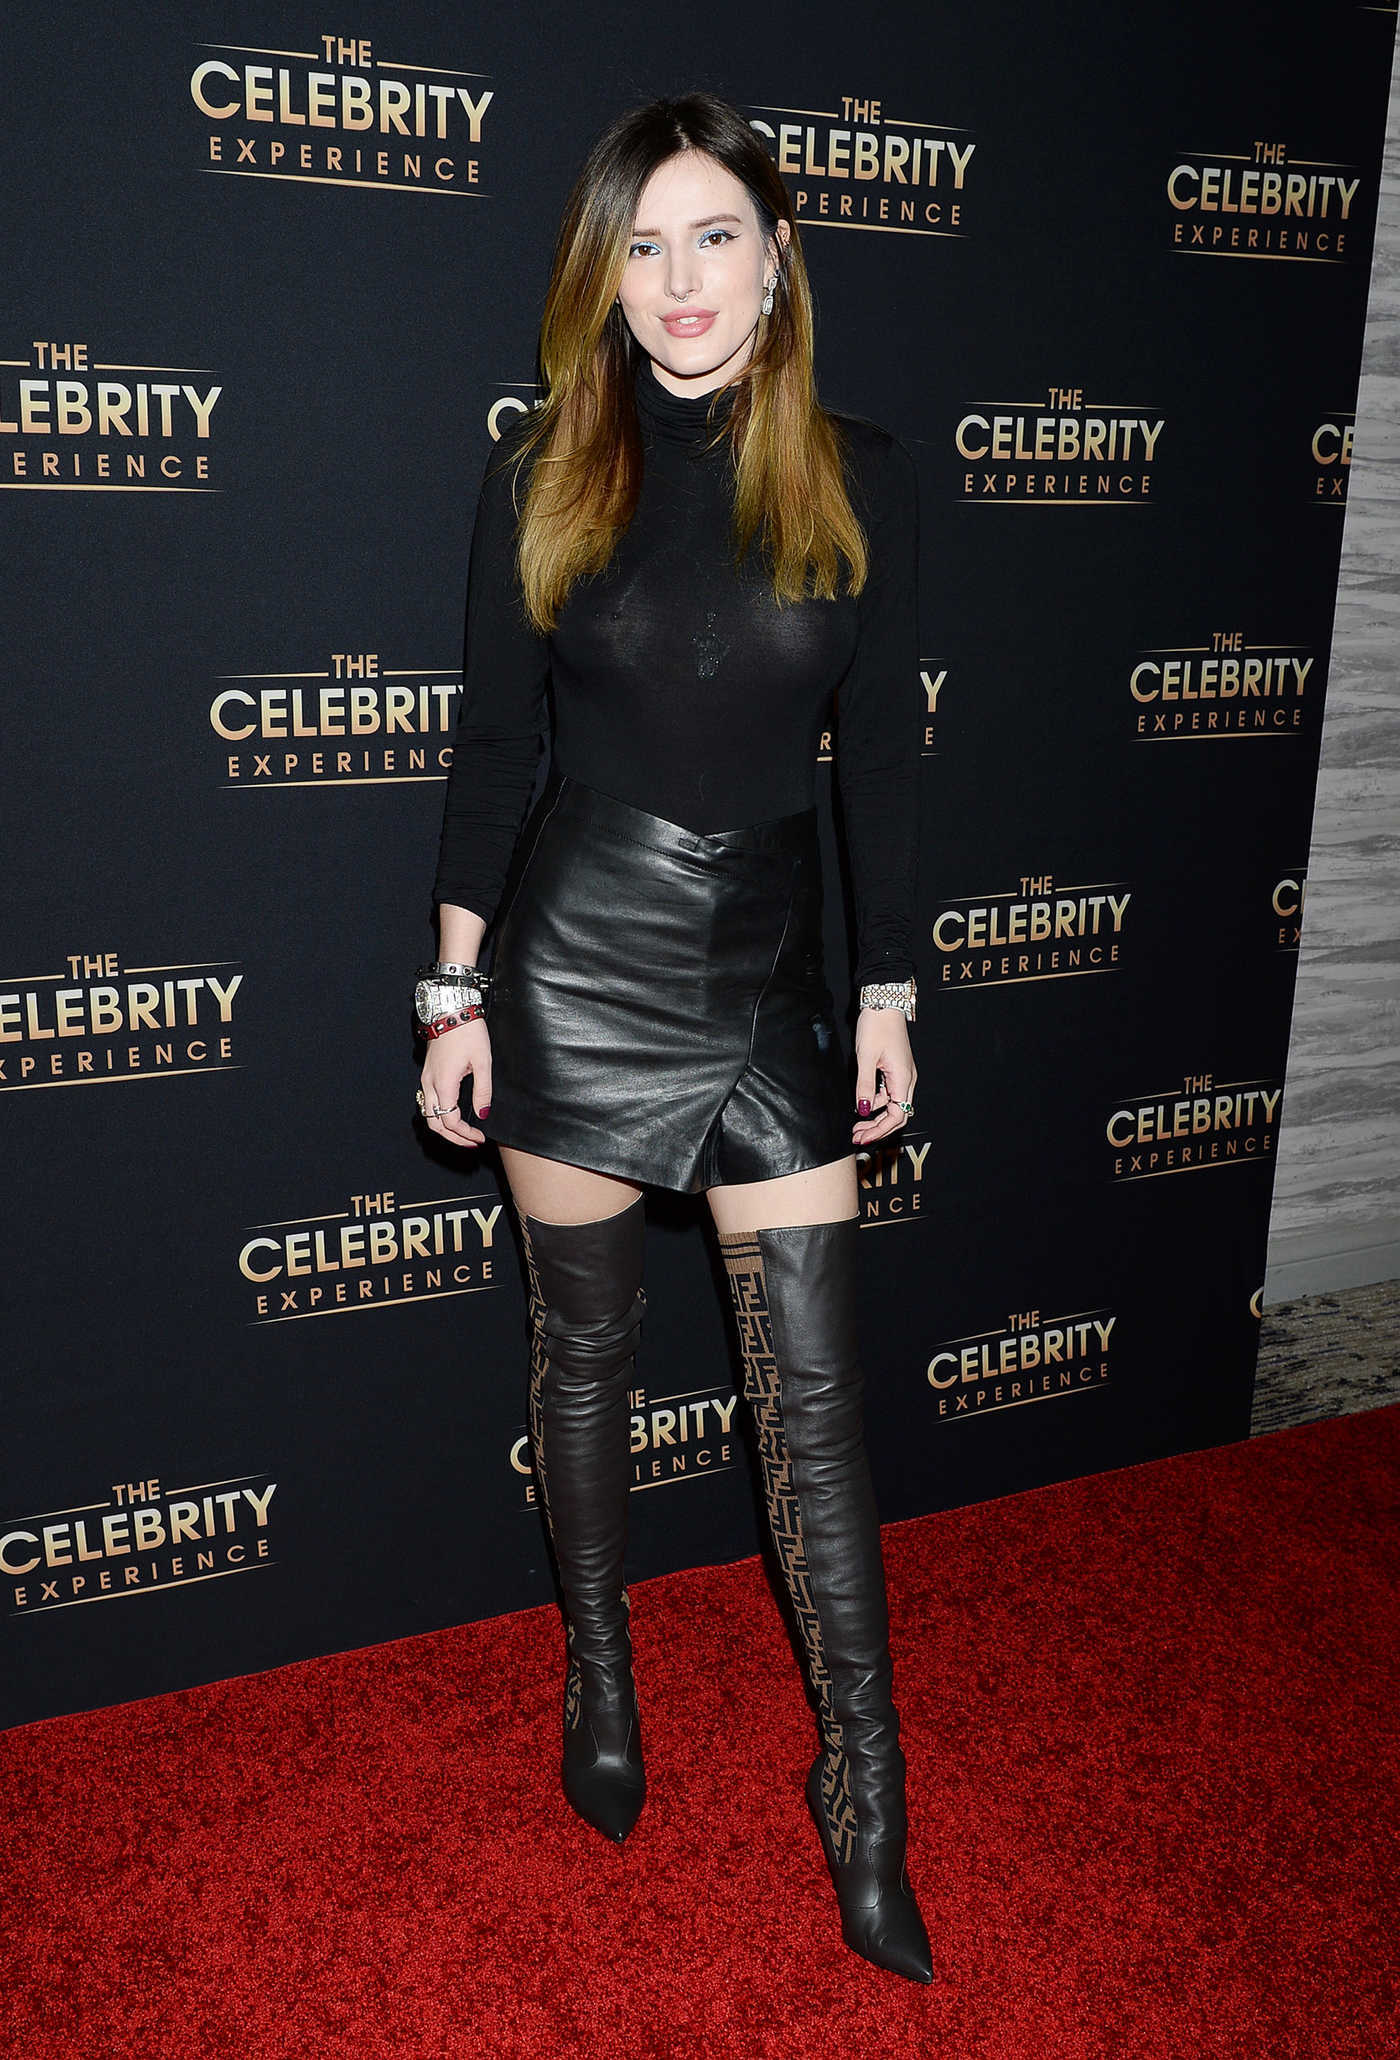 Bella Thorne Attends the Celebrity Experience Featuring Bella Thorne in Universal City 01/06/2019